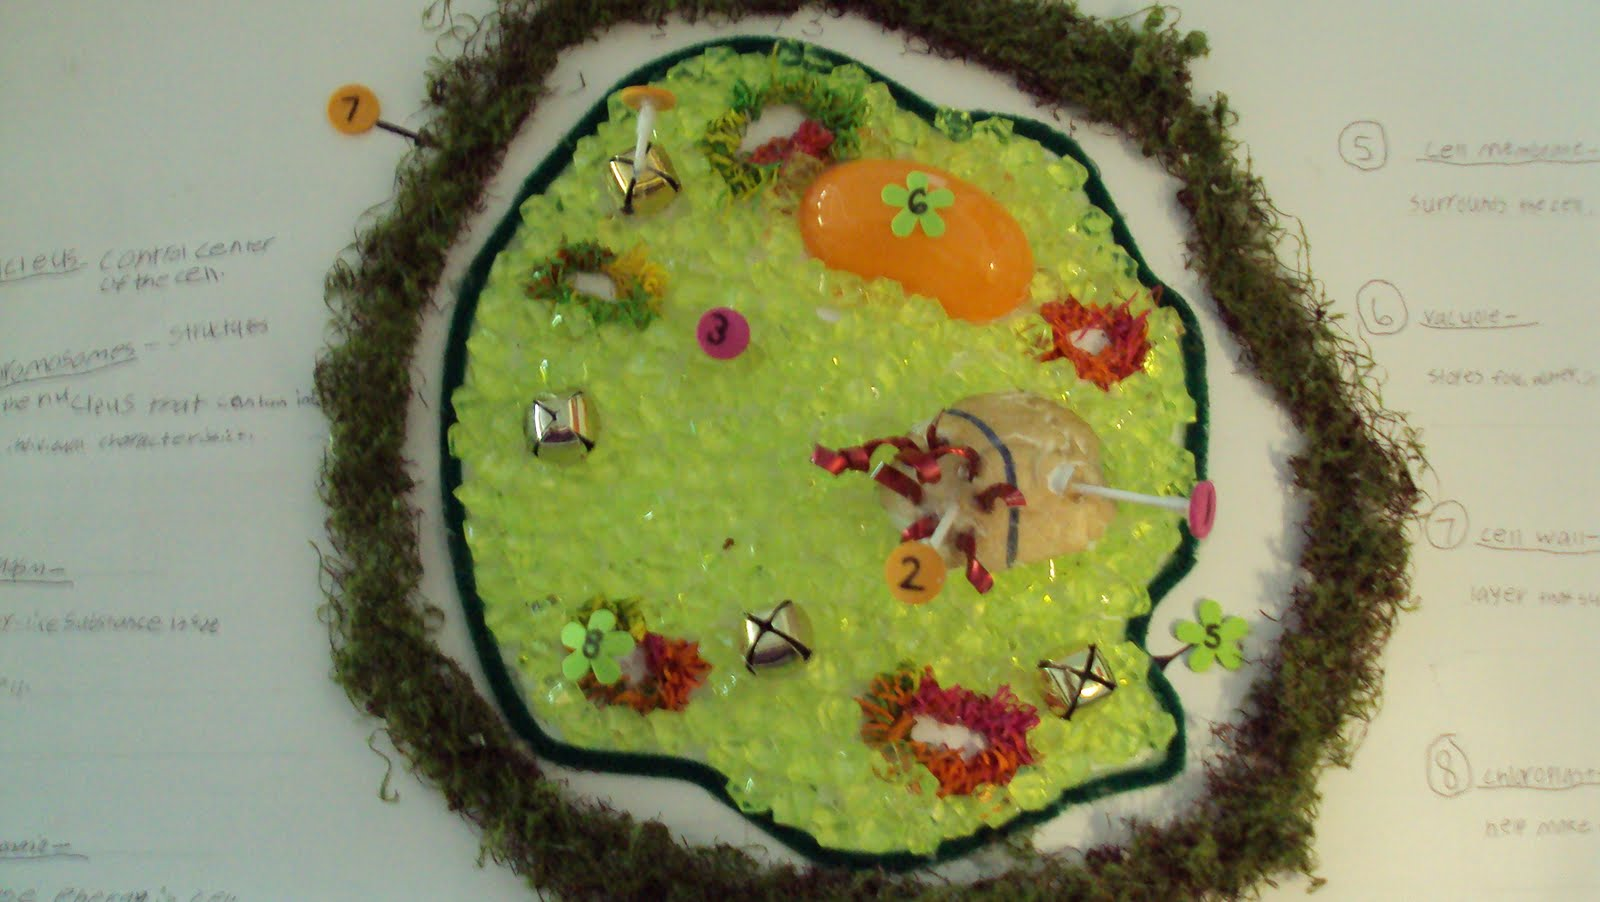 Animal Cell Model Diagram Project Parts Structure Labeled Coloring And Plant Organelles Cake